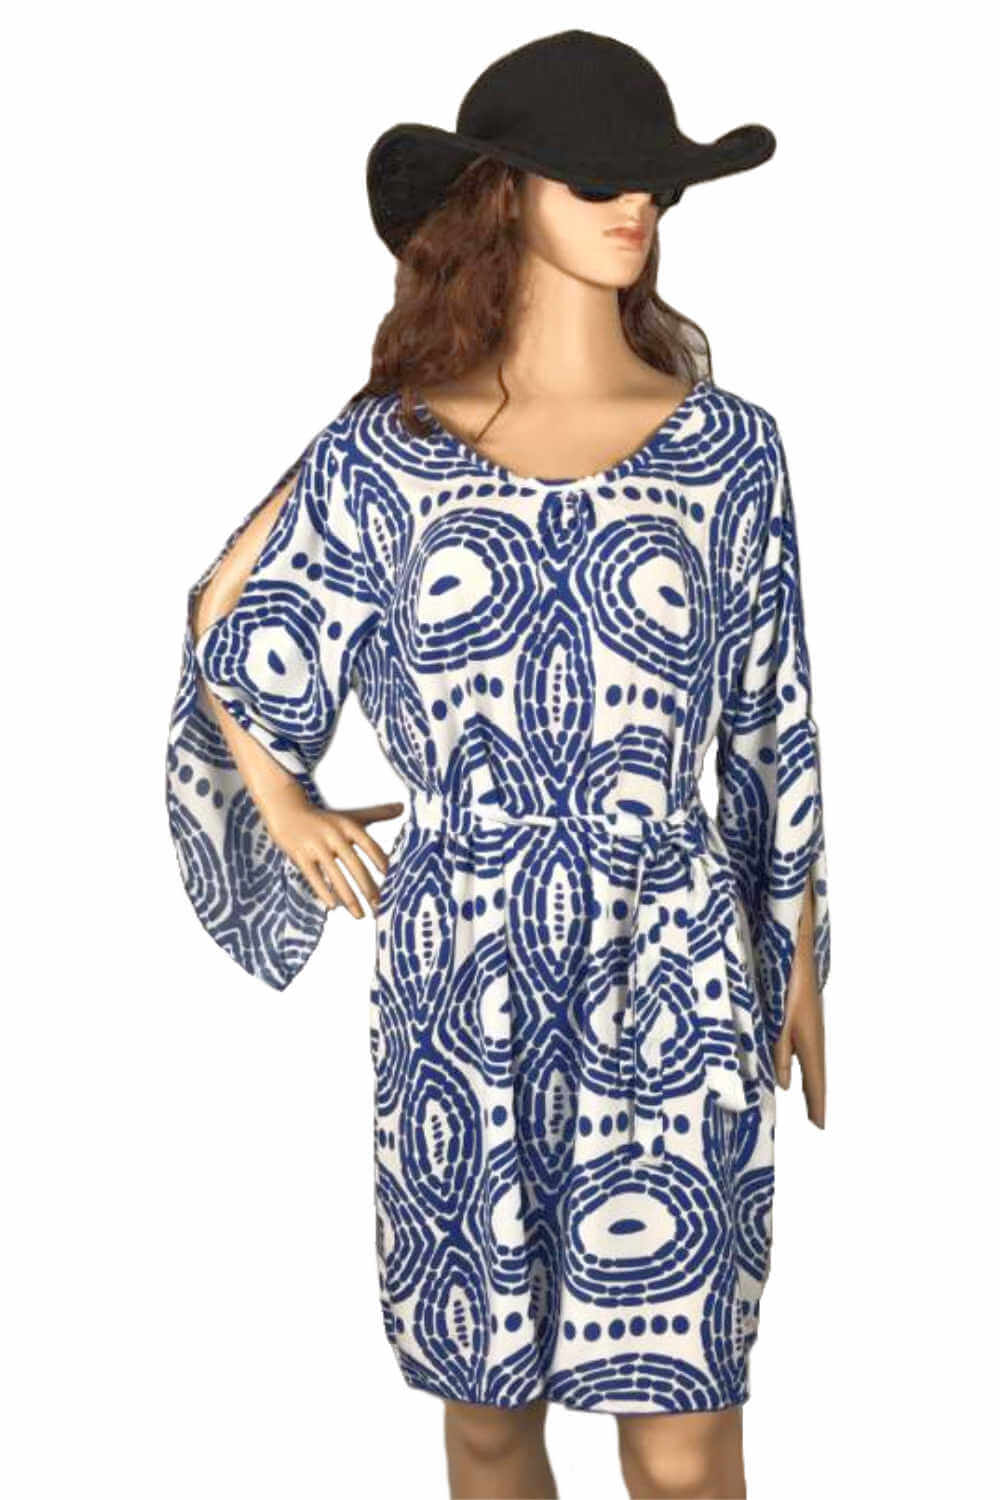 summer-beach-dress-blue-white-circle-design